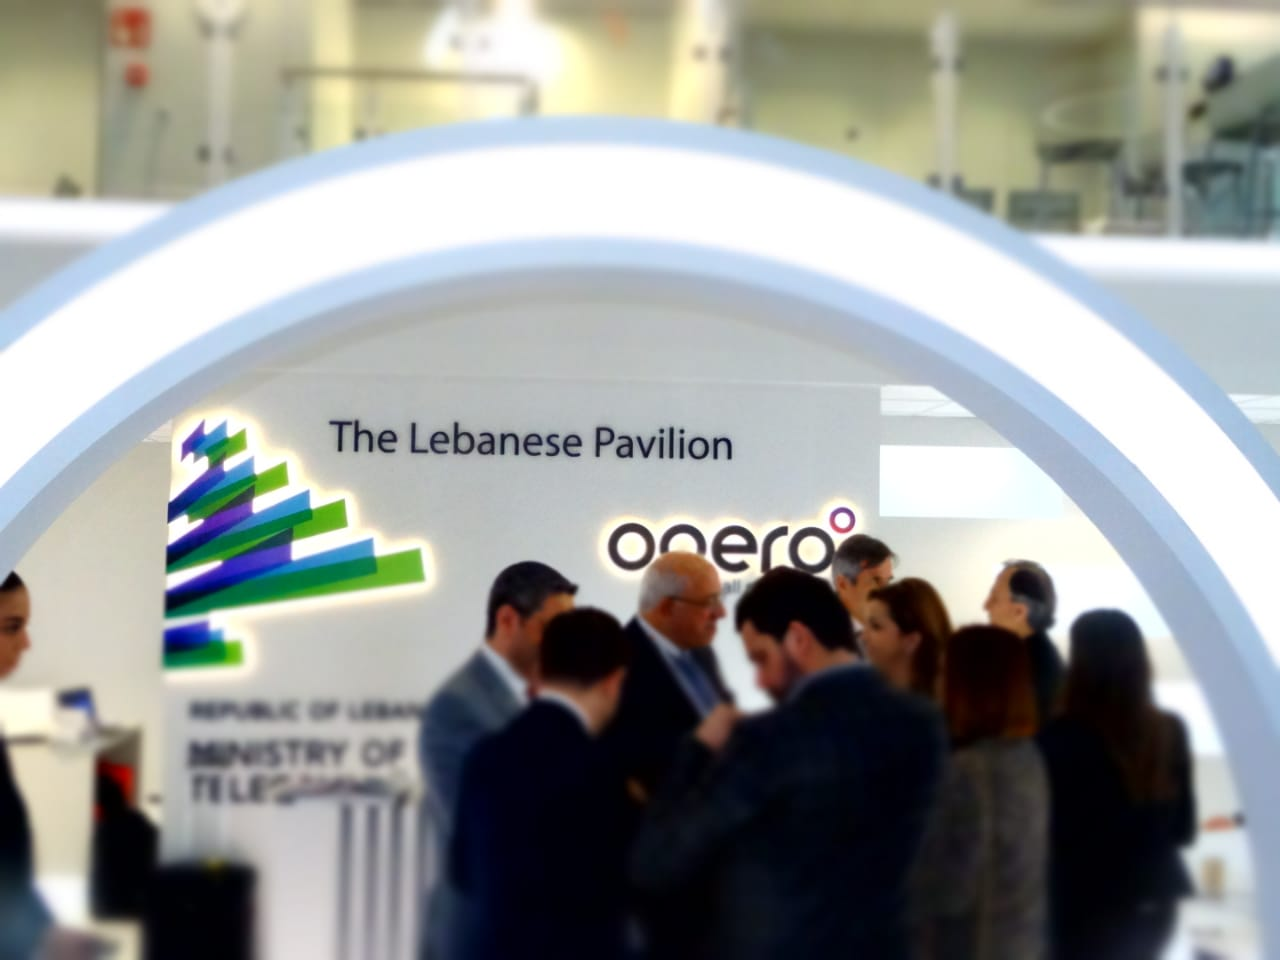 Lebanon shines at the Mobile World Congress: a growing pavilion for the second consecutive year!